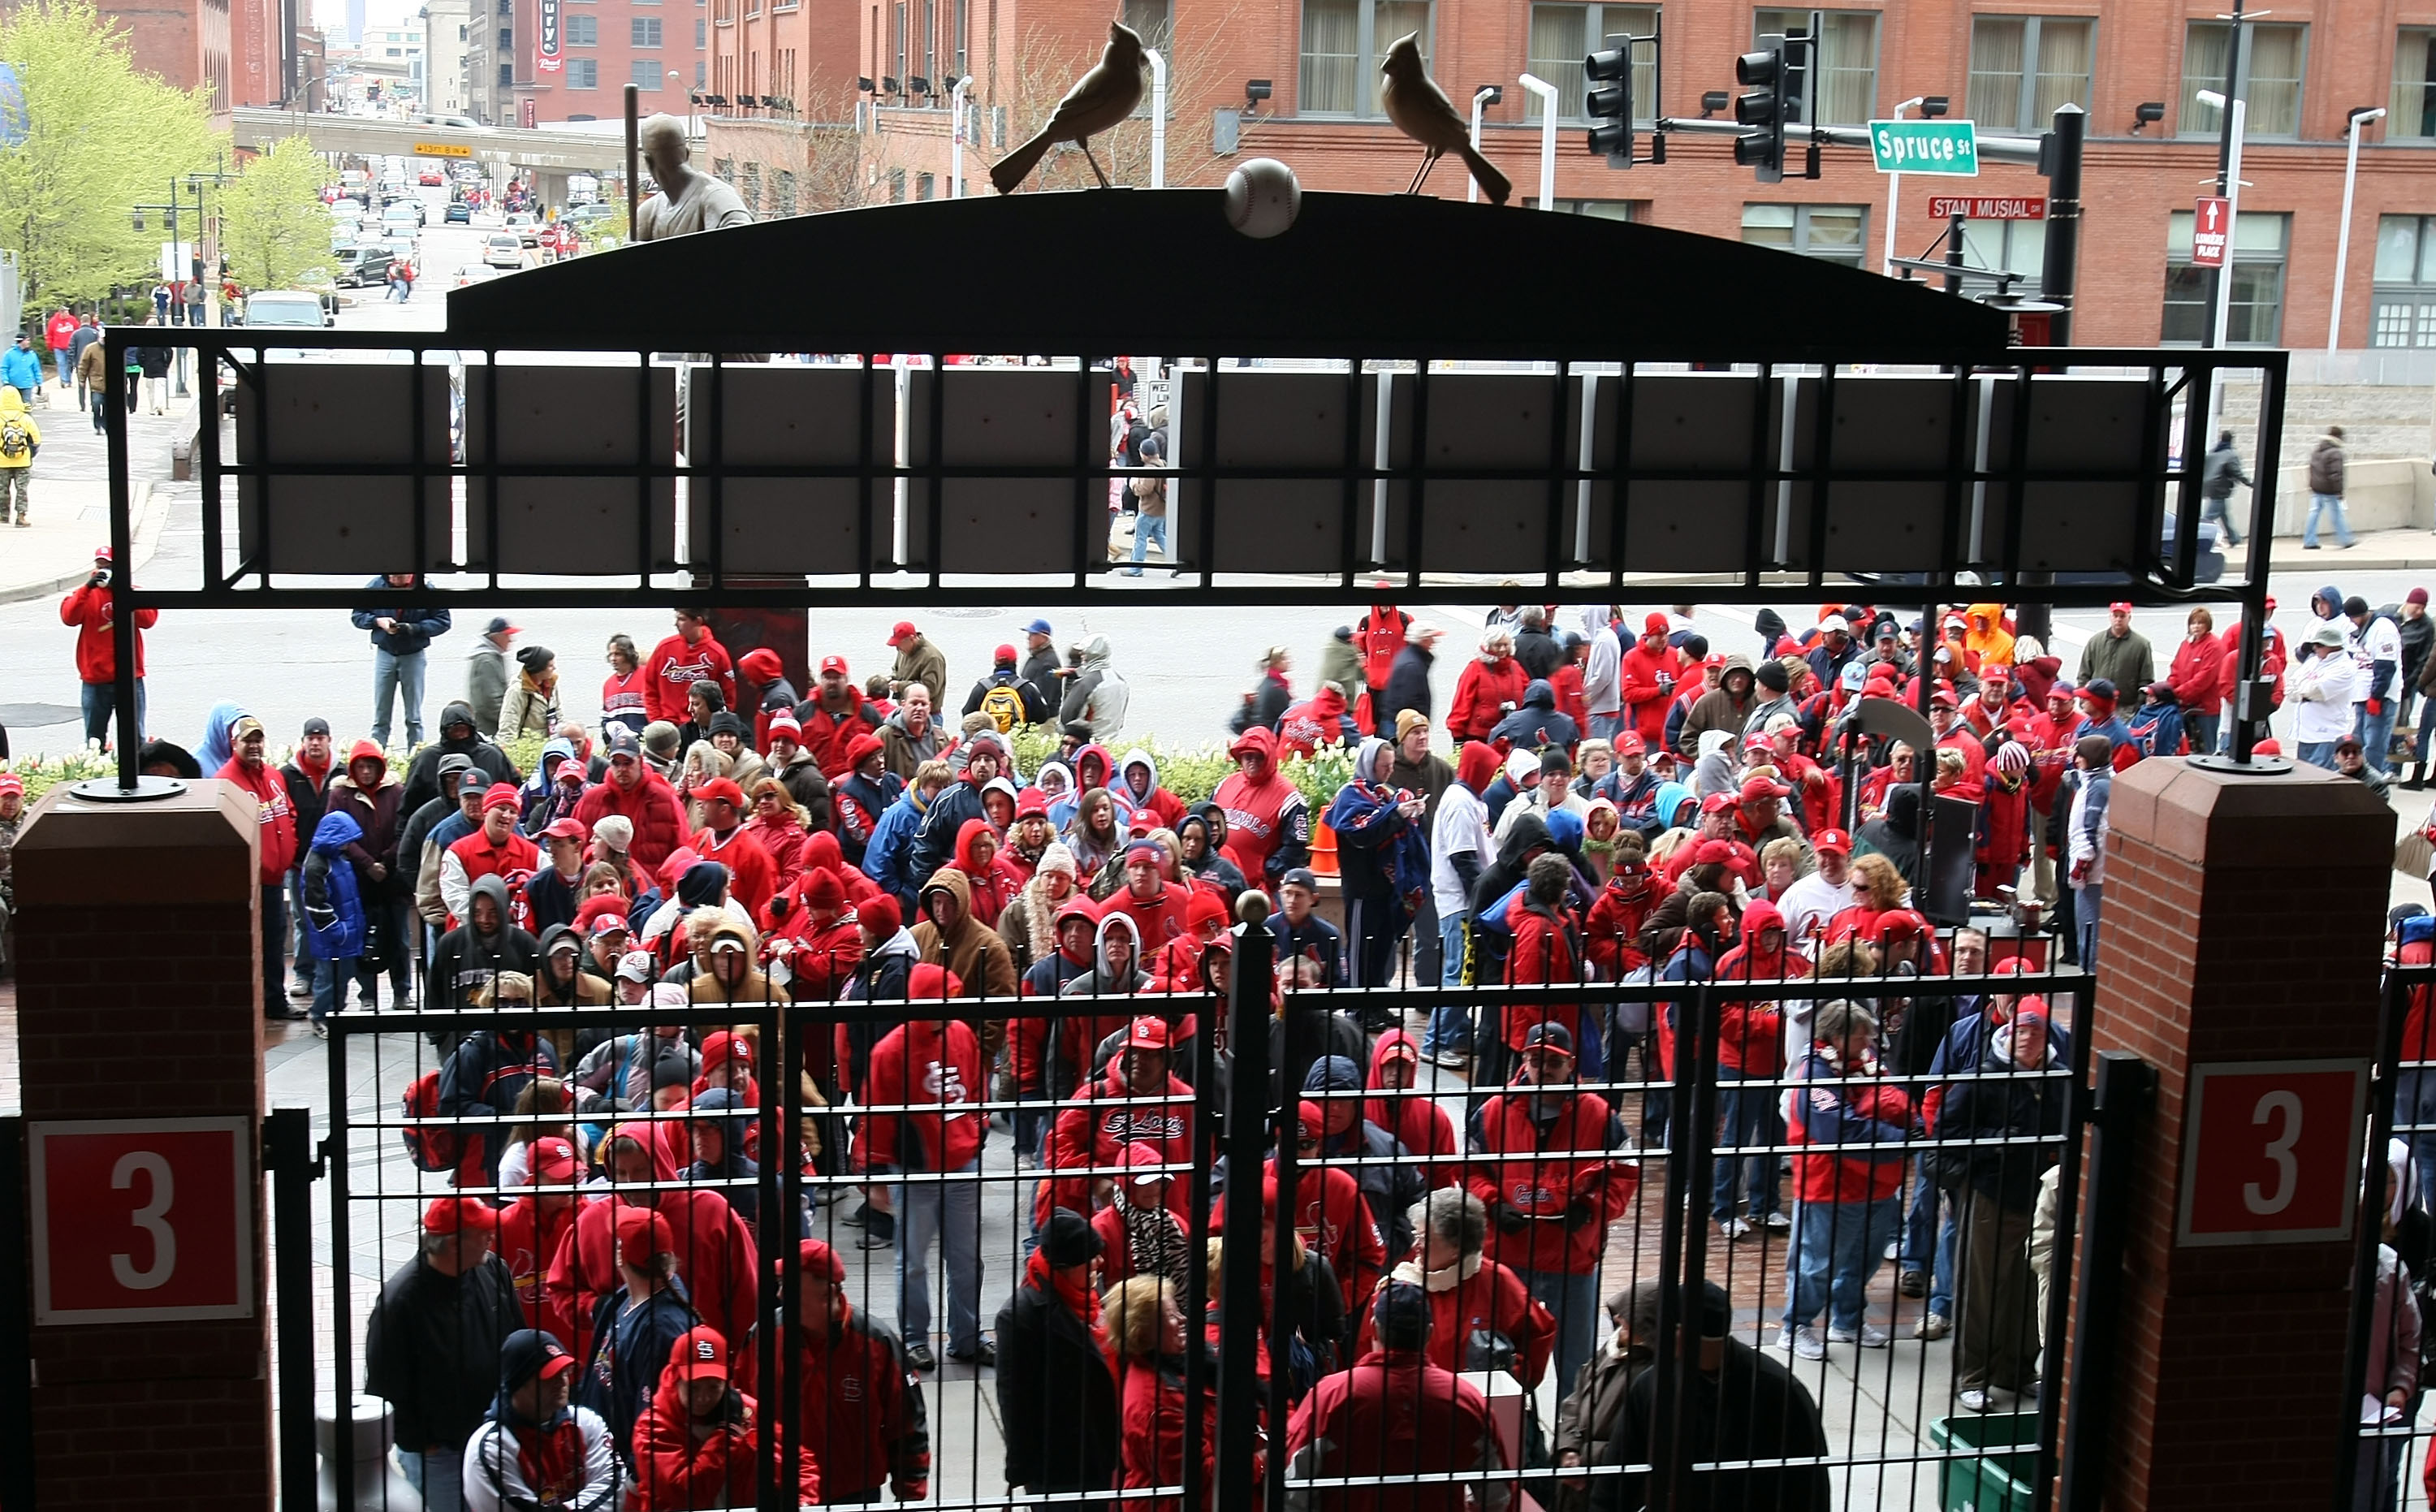 ST. LOUIS - APRIL 06:  Fans wait for the gates to open  for the game between the St. Louis Cardinals and the Pittsburgh Pirates during Opening Day on April 6, 2009  at Busch Stadium in St. Louis, Missouri.  (Photo by Elsa/Getty Images)